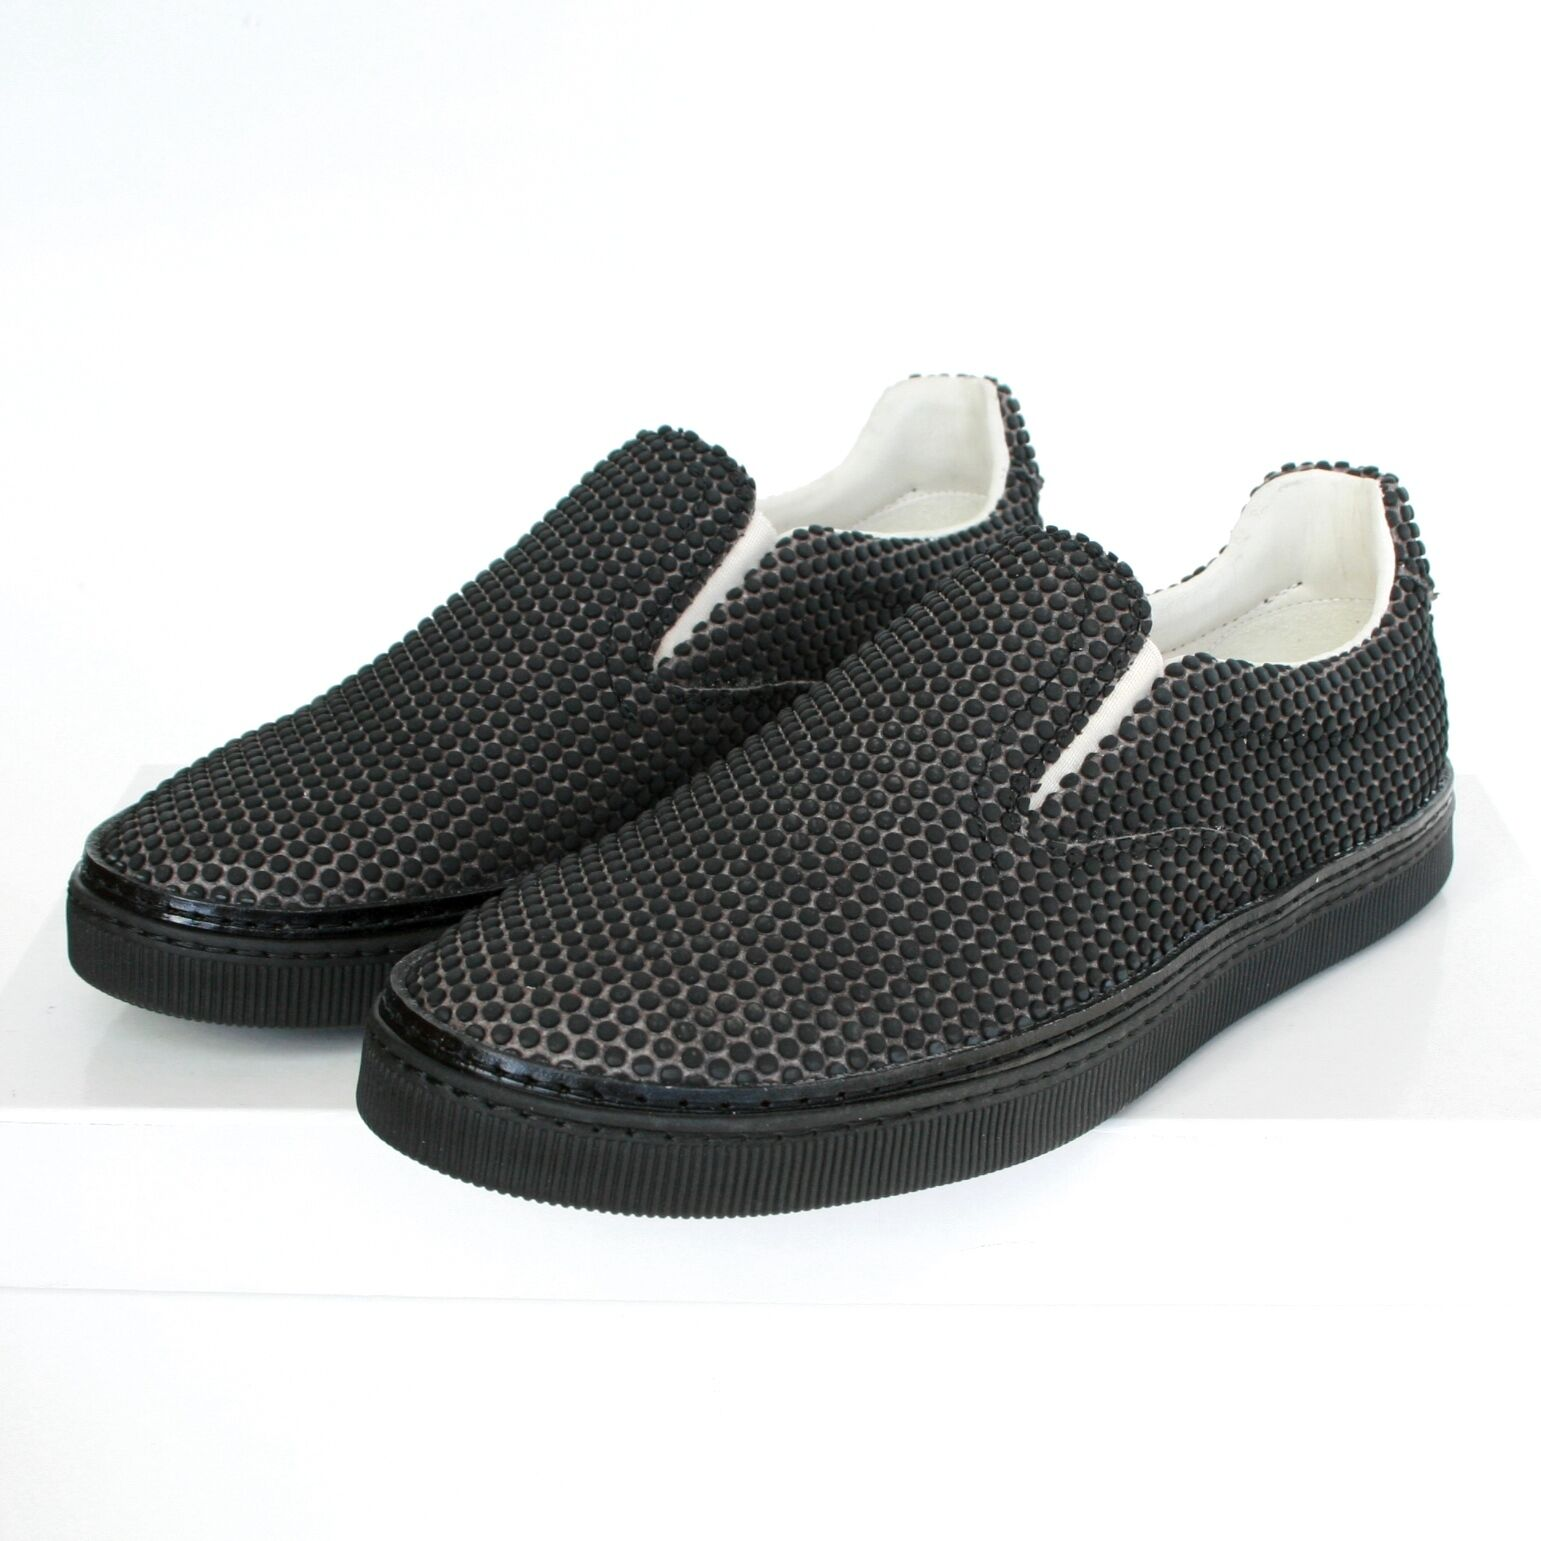 MAISON MARTIN MARGIELA rubber dot covered slip-on trainers sneakers shoes 39 NEW